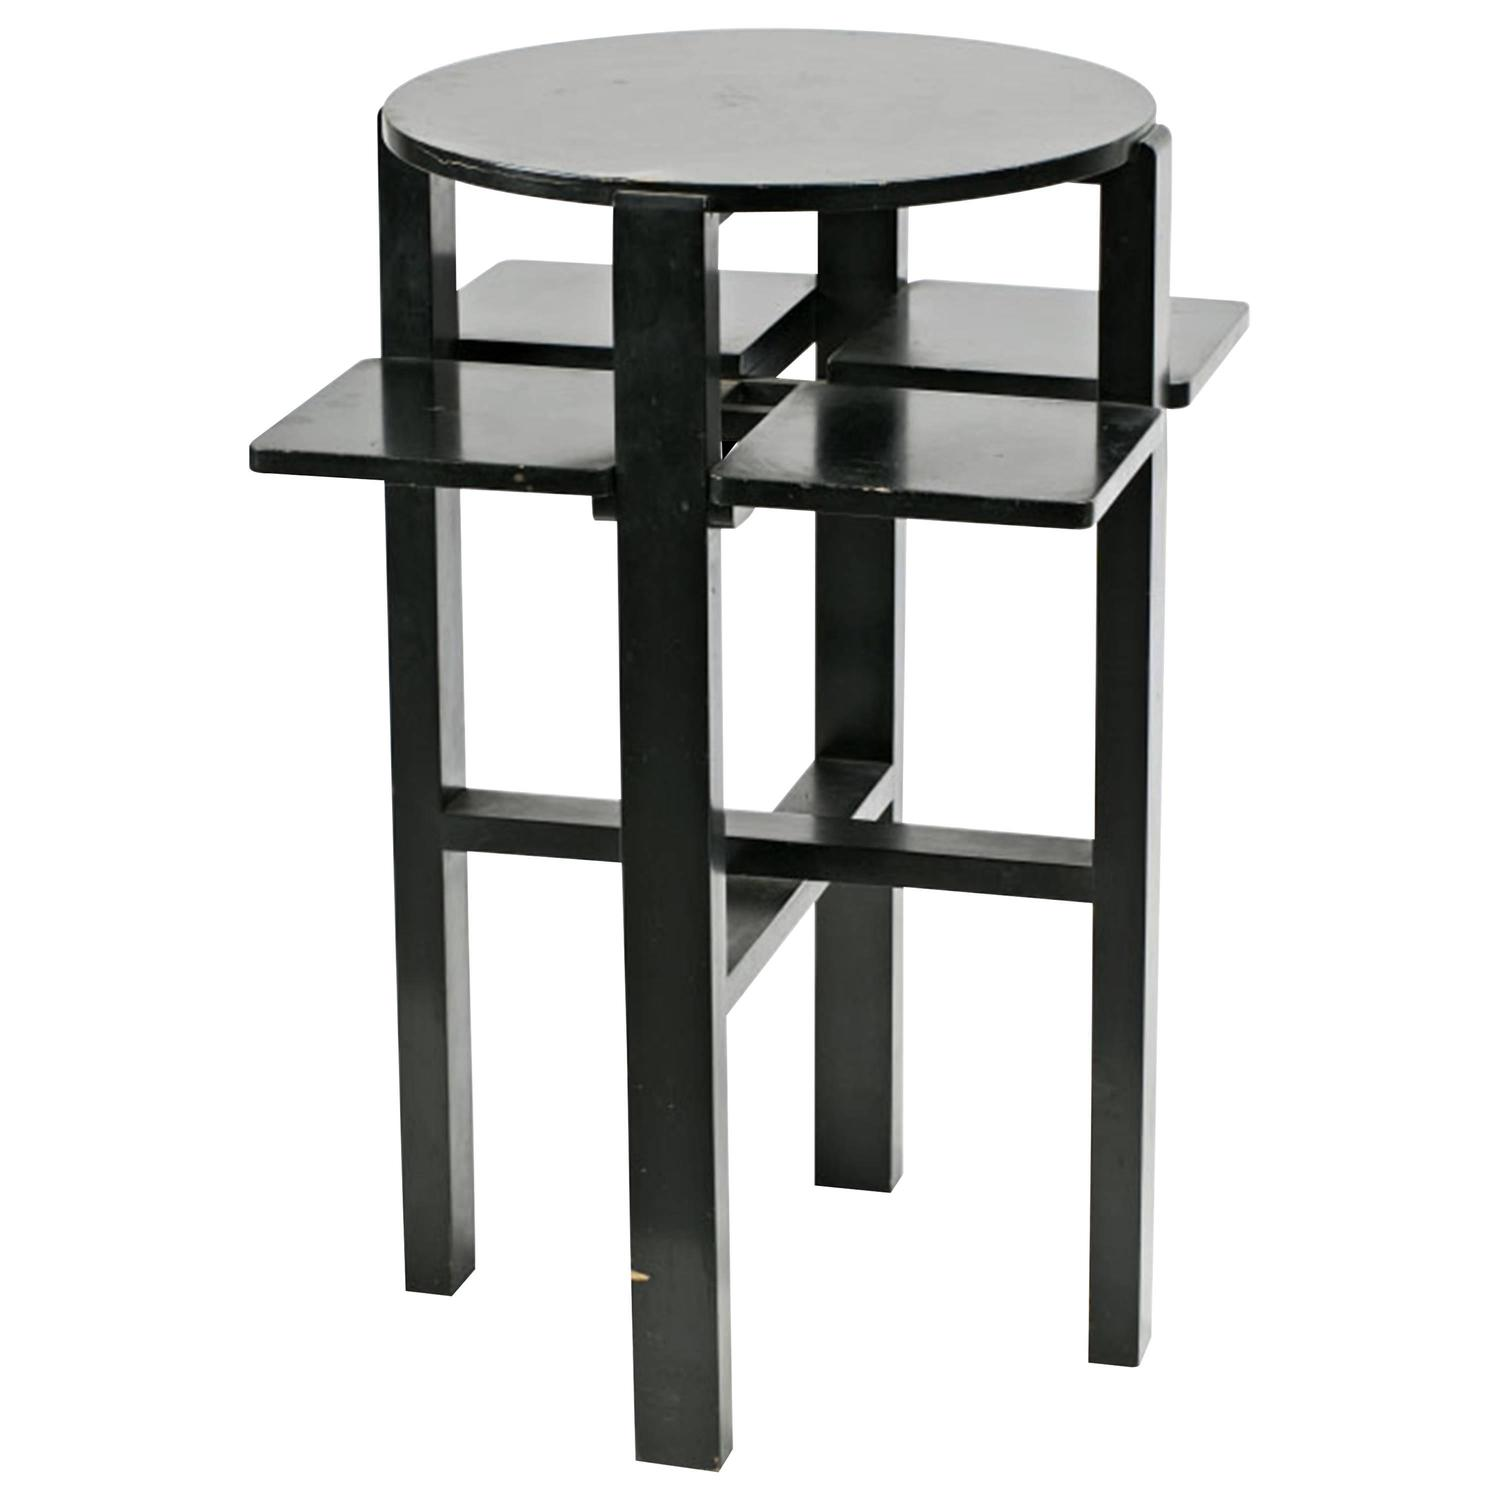 charles rennie mackintosh domino side table for sale at 1stdibs. Black Bedroom Furniture Sets. Home Design Ideas